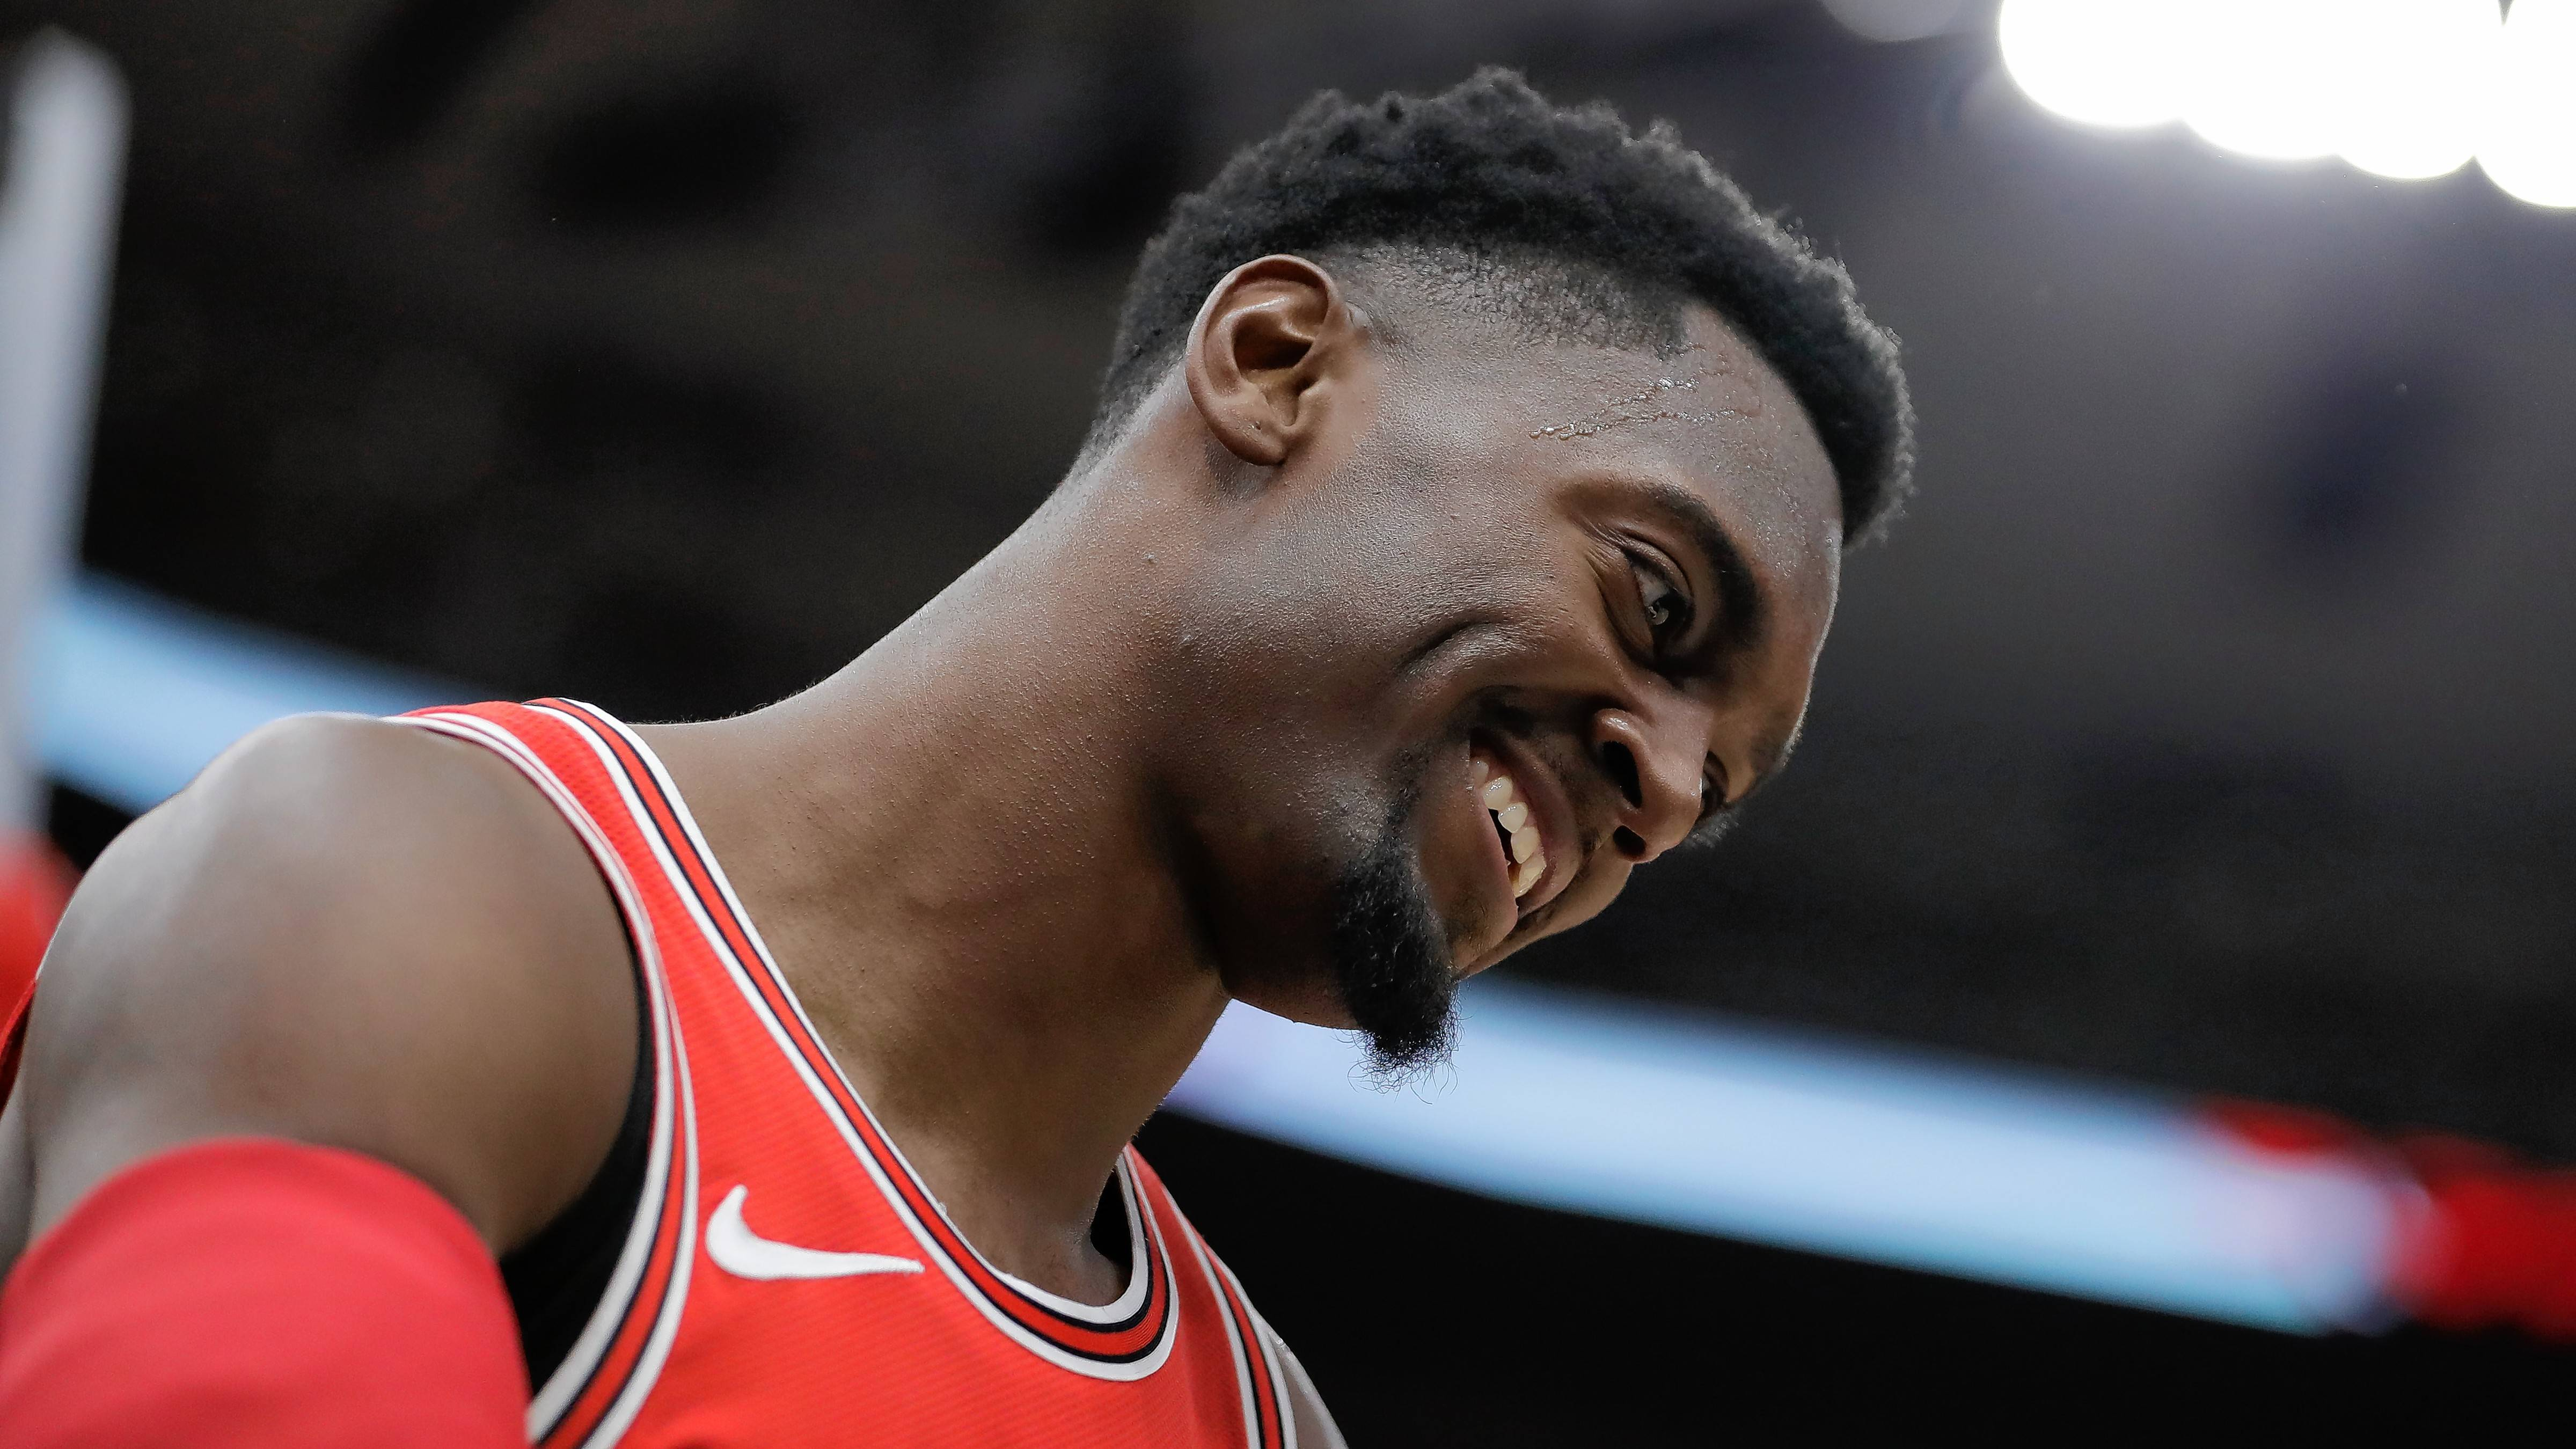 The Bulls' next lineup change is relatively simple -- Bobby Portis moving in at center for Cristiano Felicio -- but it raises a number of interesting scenarios to watch for against Boston on Monday.